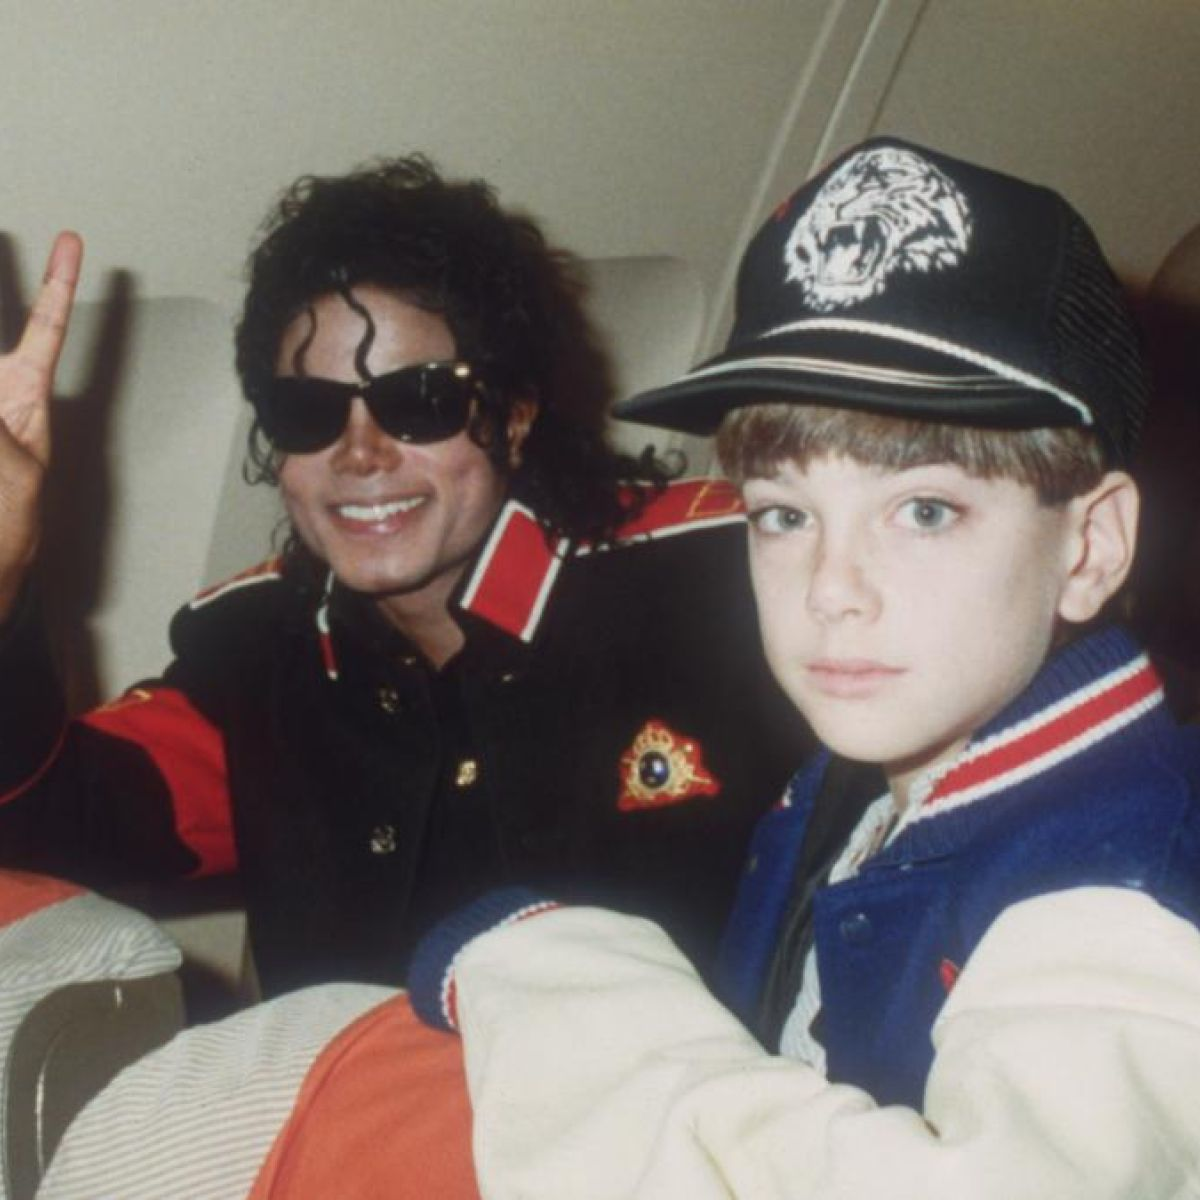 Michael Jackson: The boys, the king, the shouting match